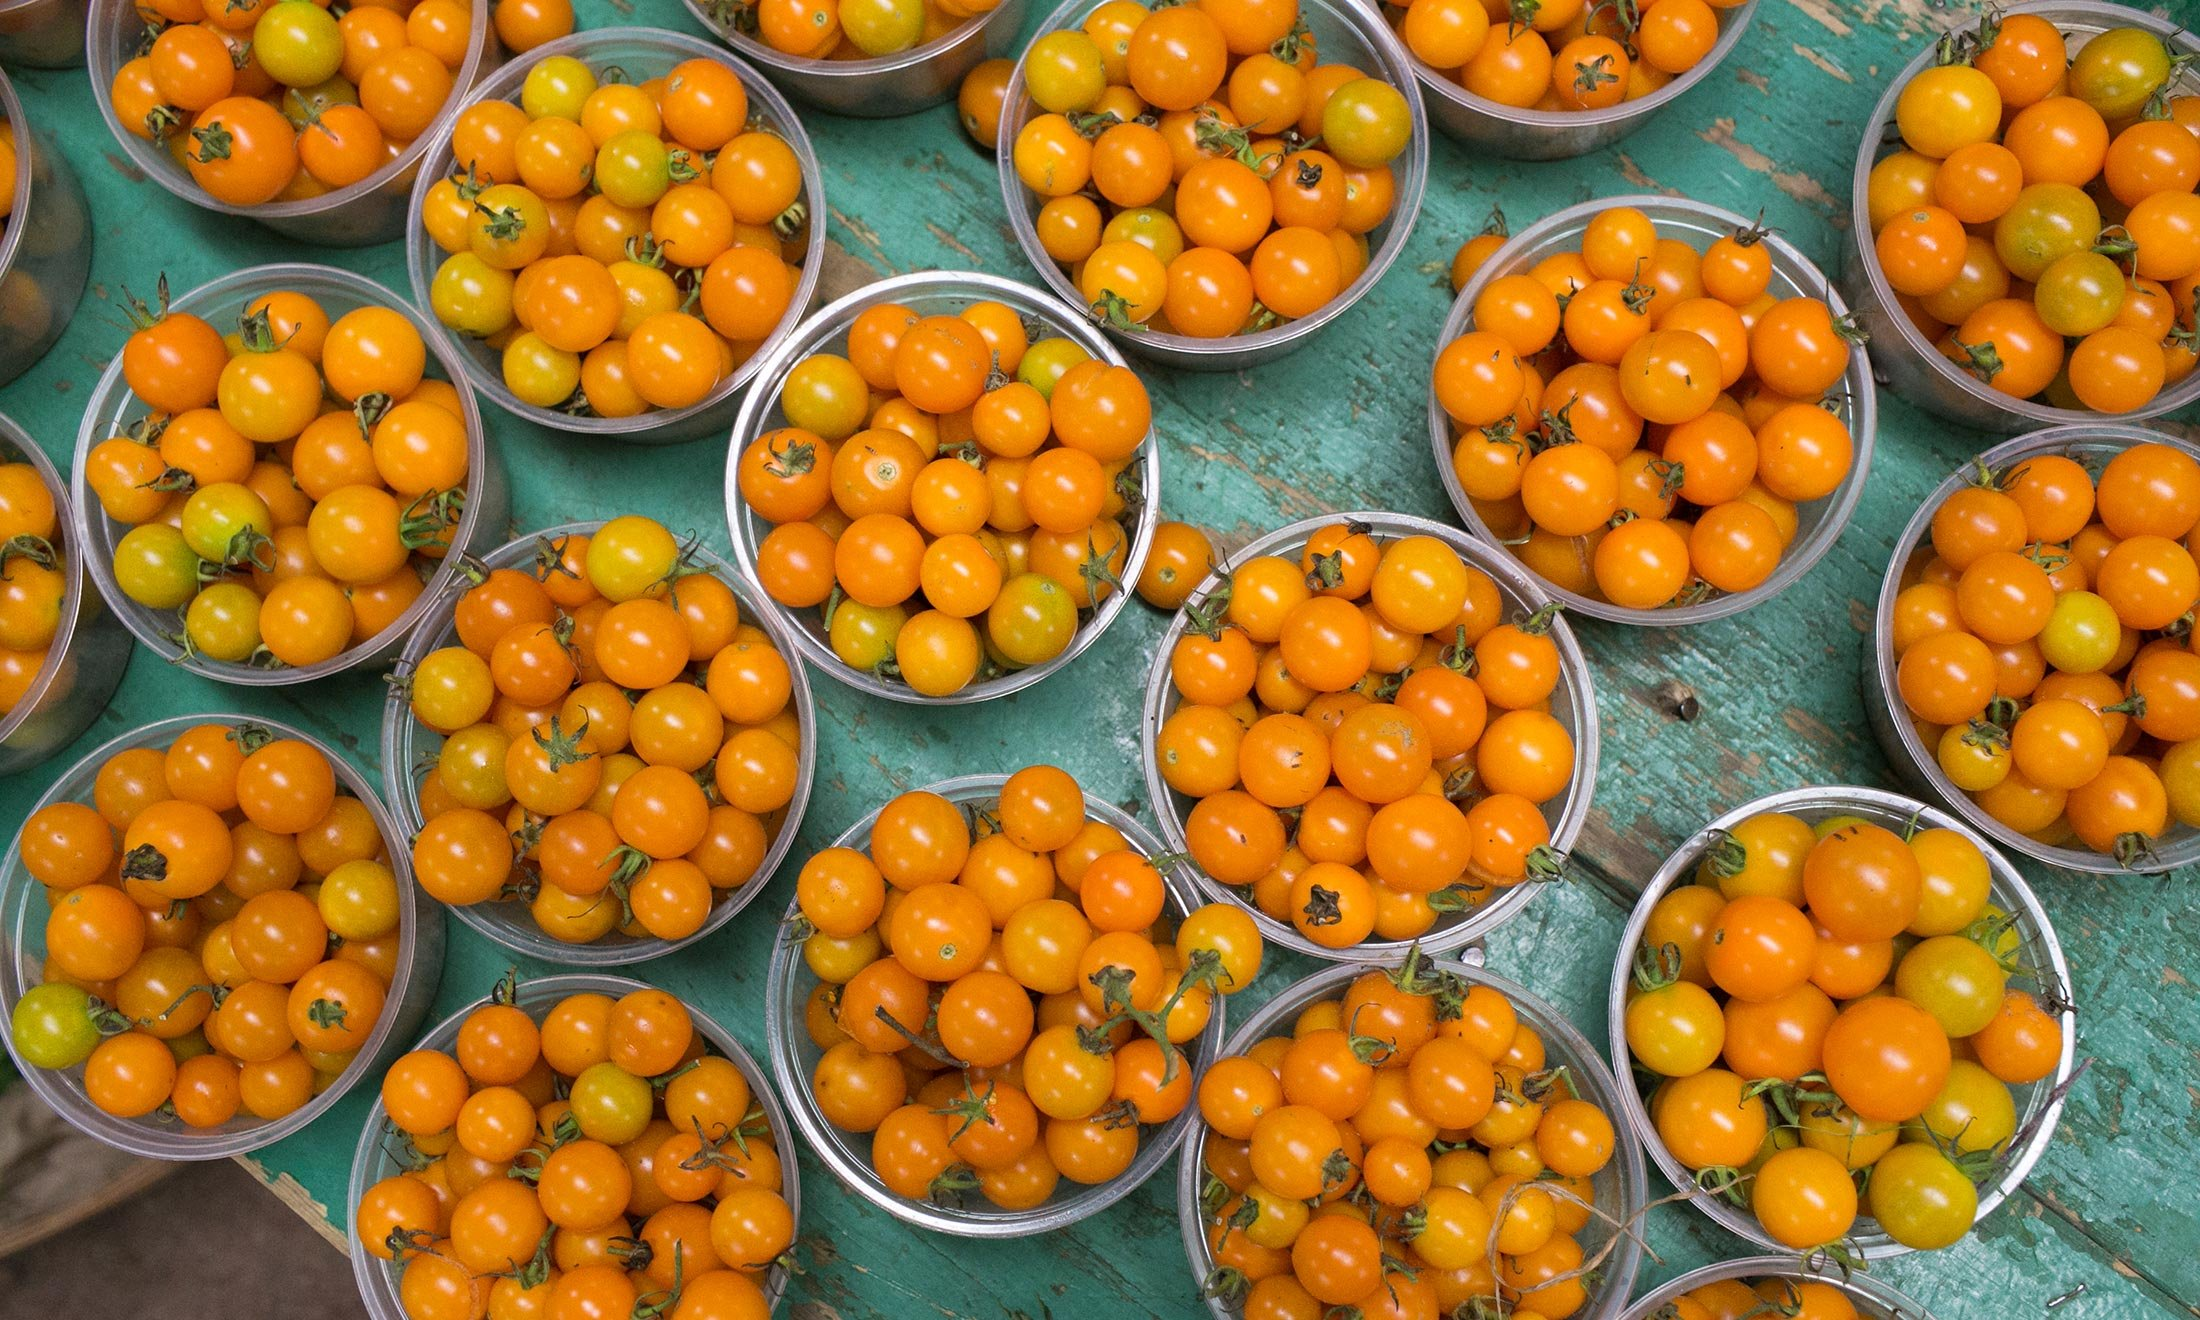 Yellow cherry tomatoes in bowls available for purchase at the Royal Oak Farmers Market